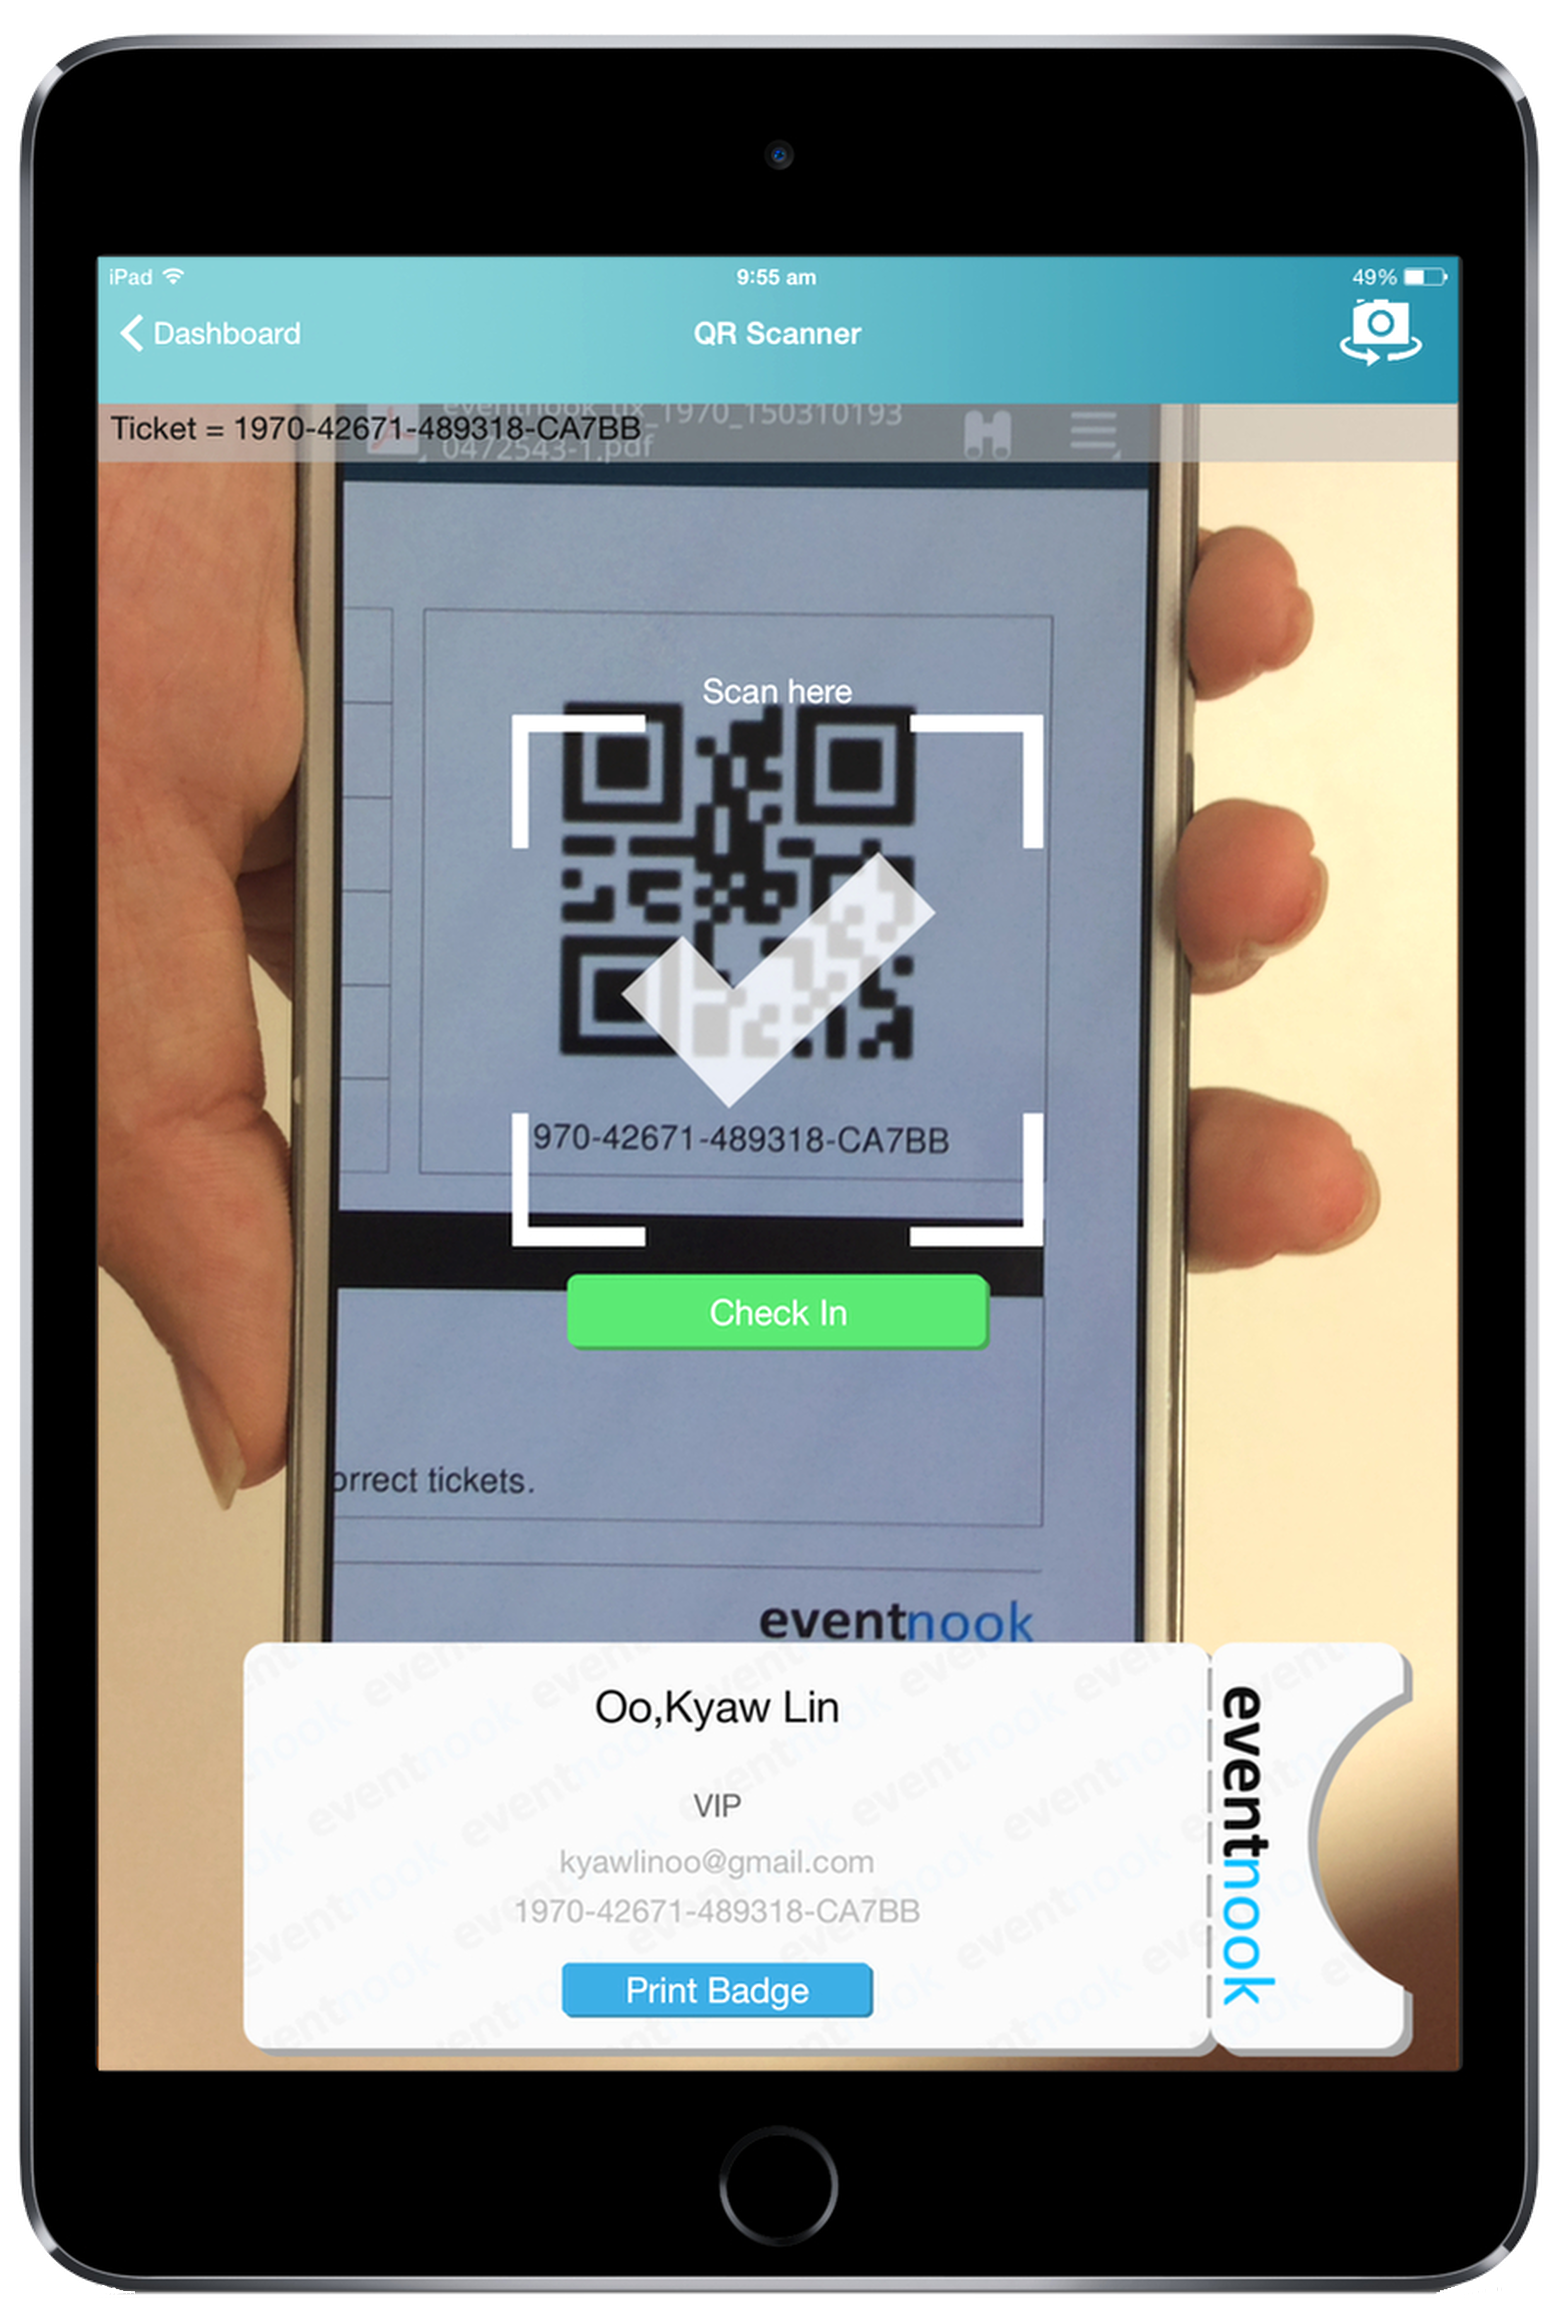 Event Check-in QR Code scan from mobile